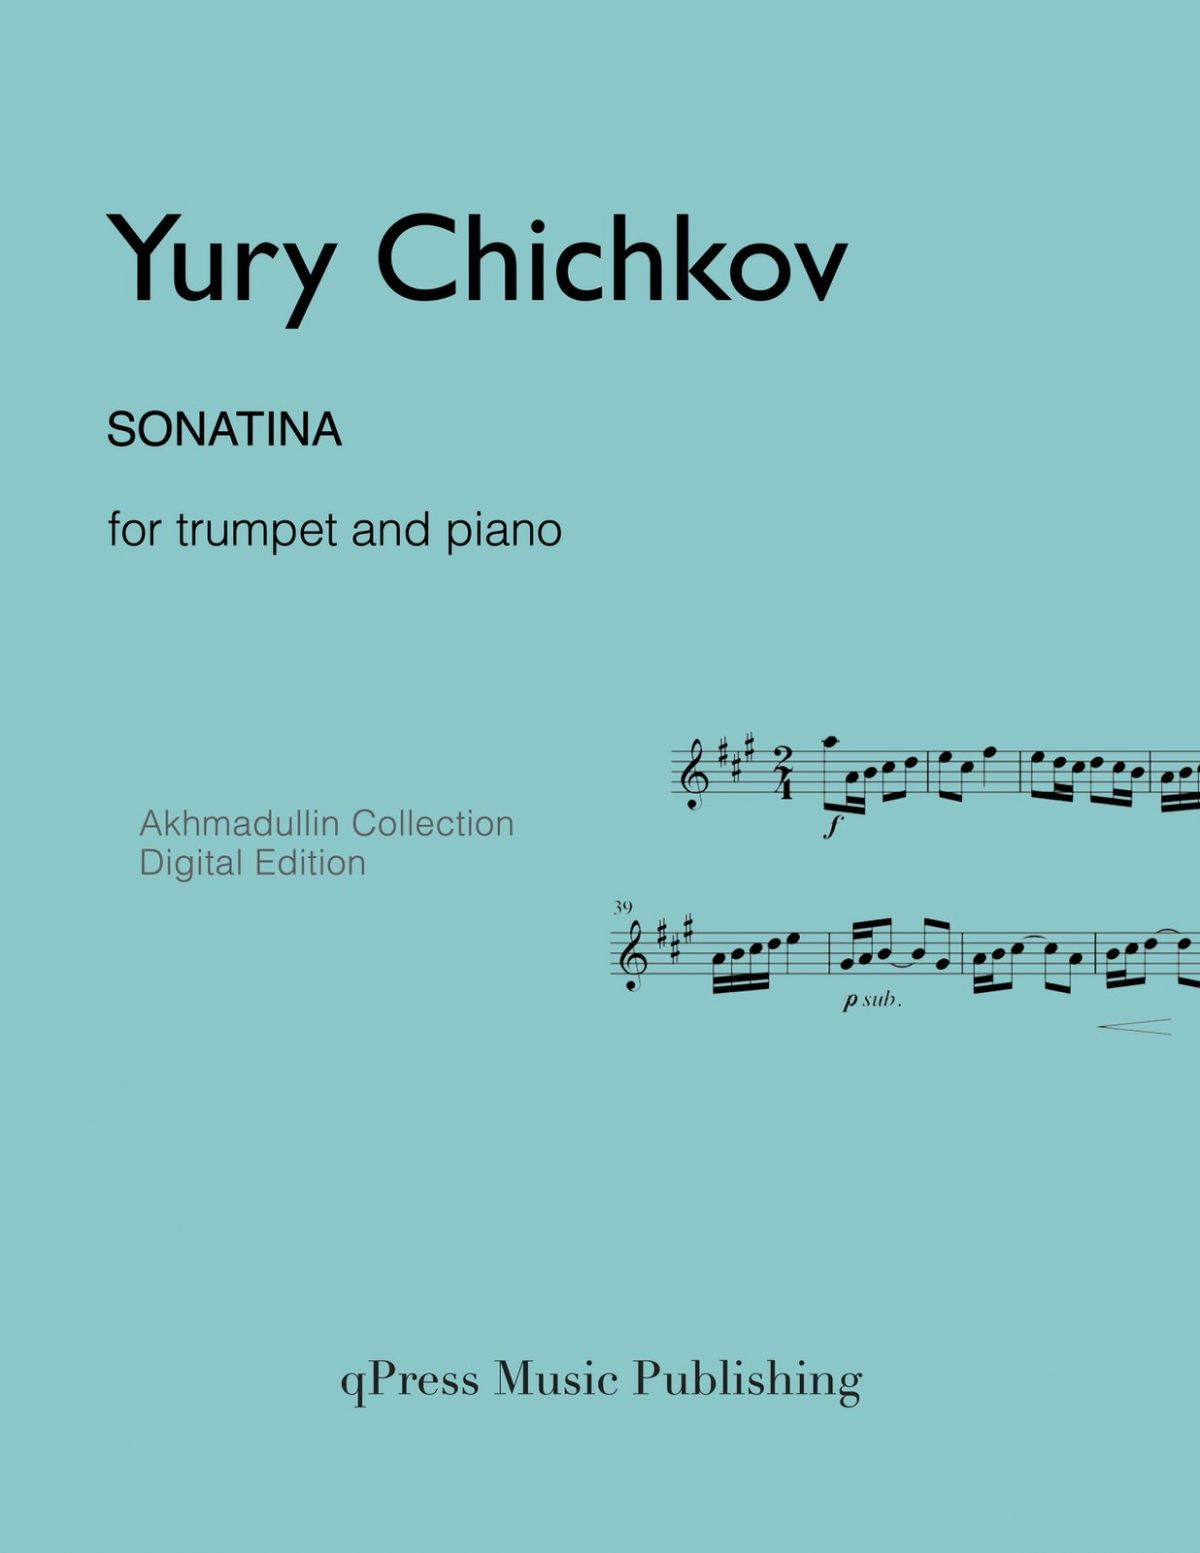 Chichkov, Sonatina (Score and Part)-p01